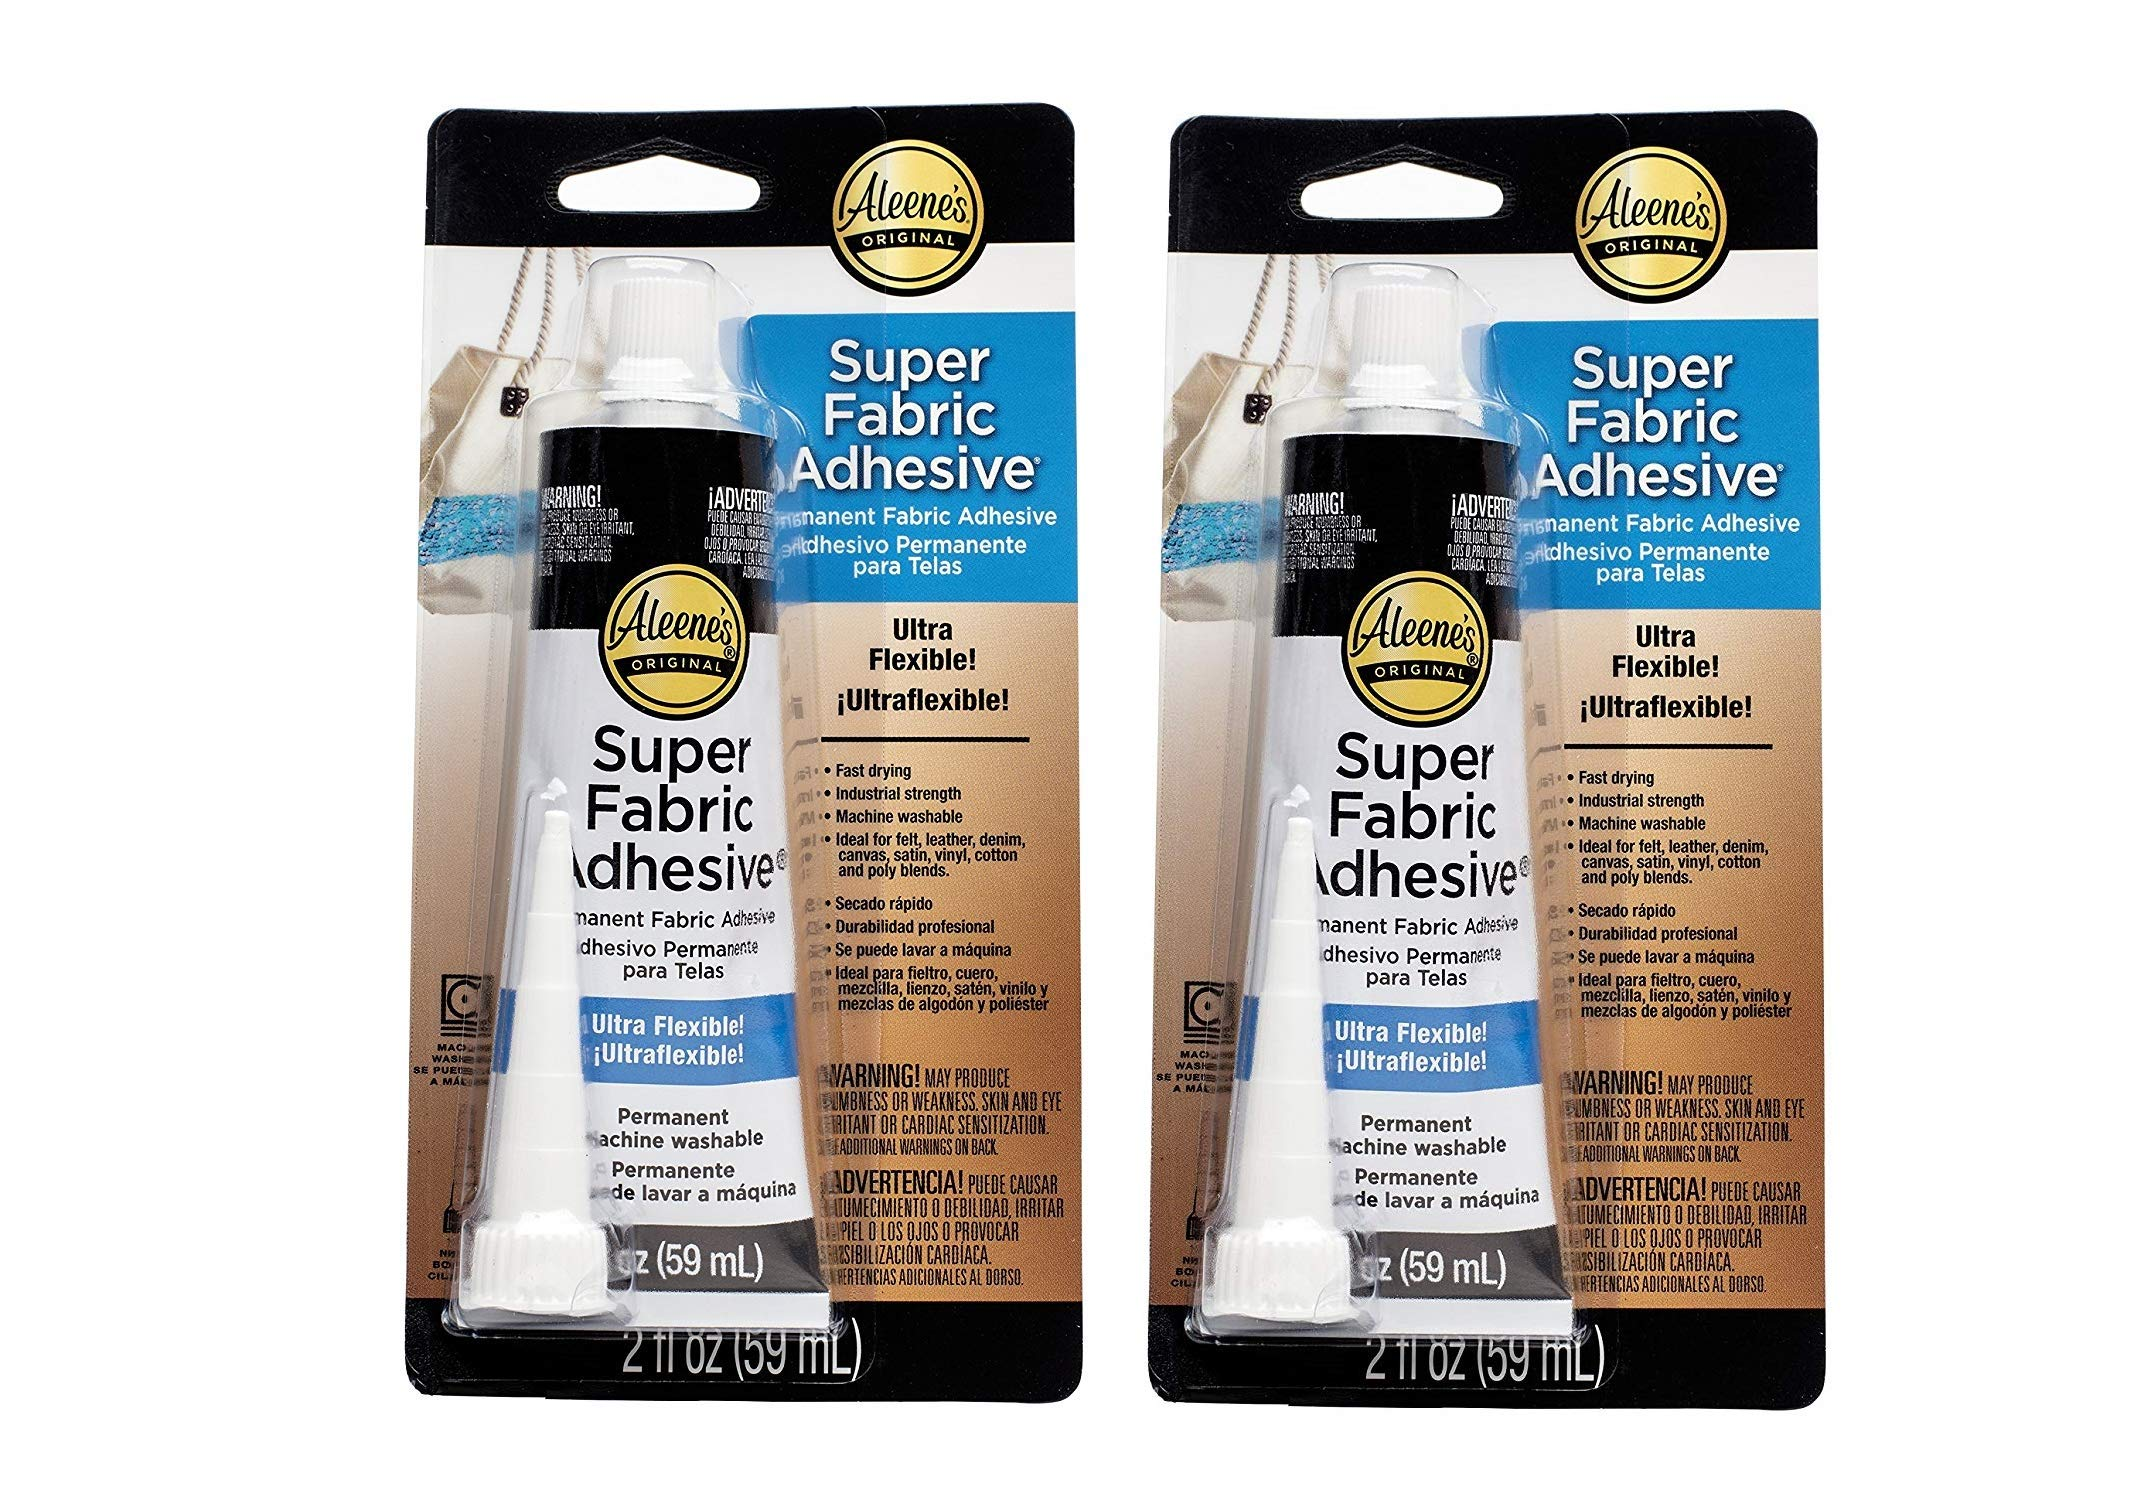 Aleene's Platinum Bond Adhesive Super Fabric 2 oz (2) by Aleene's